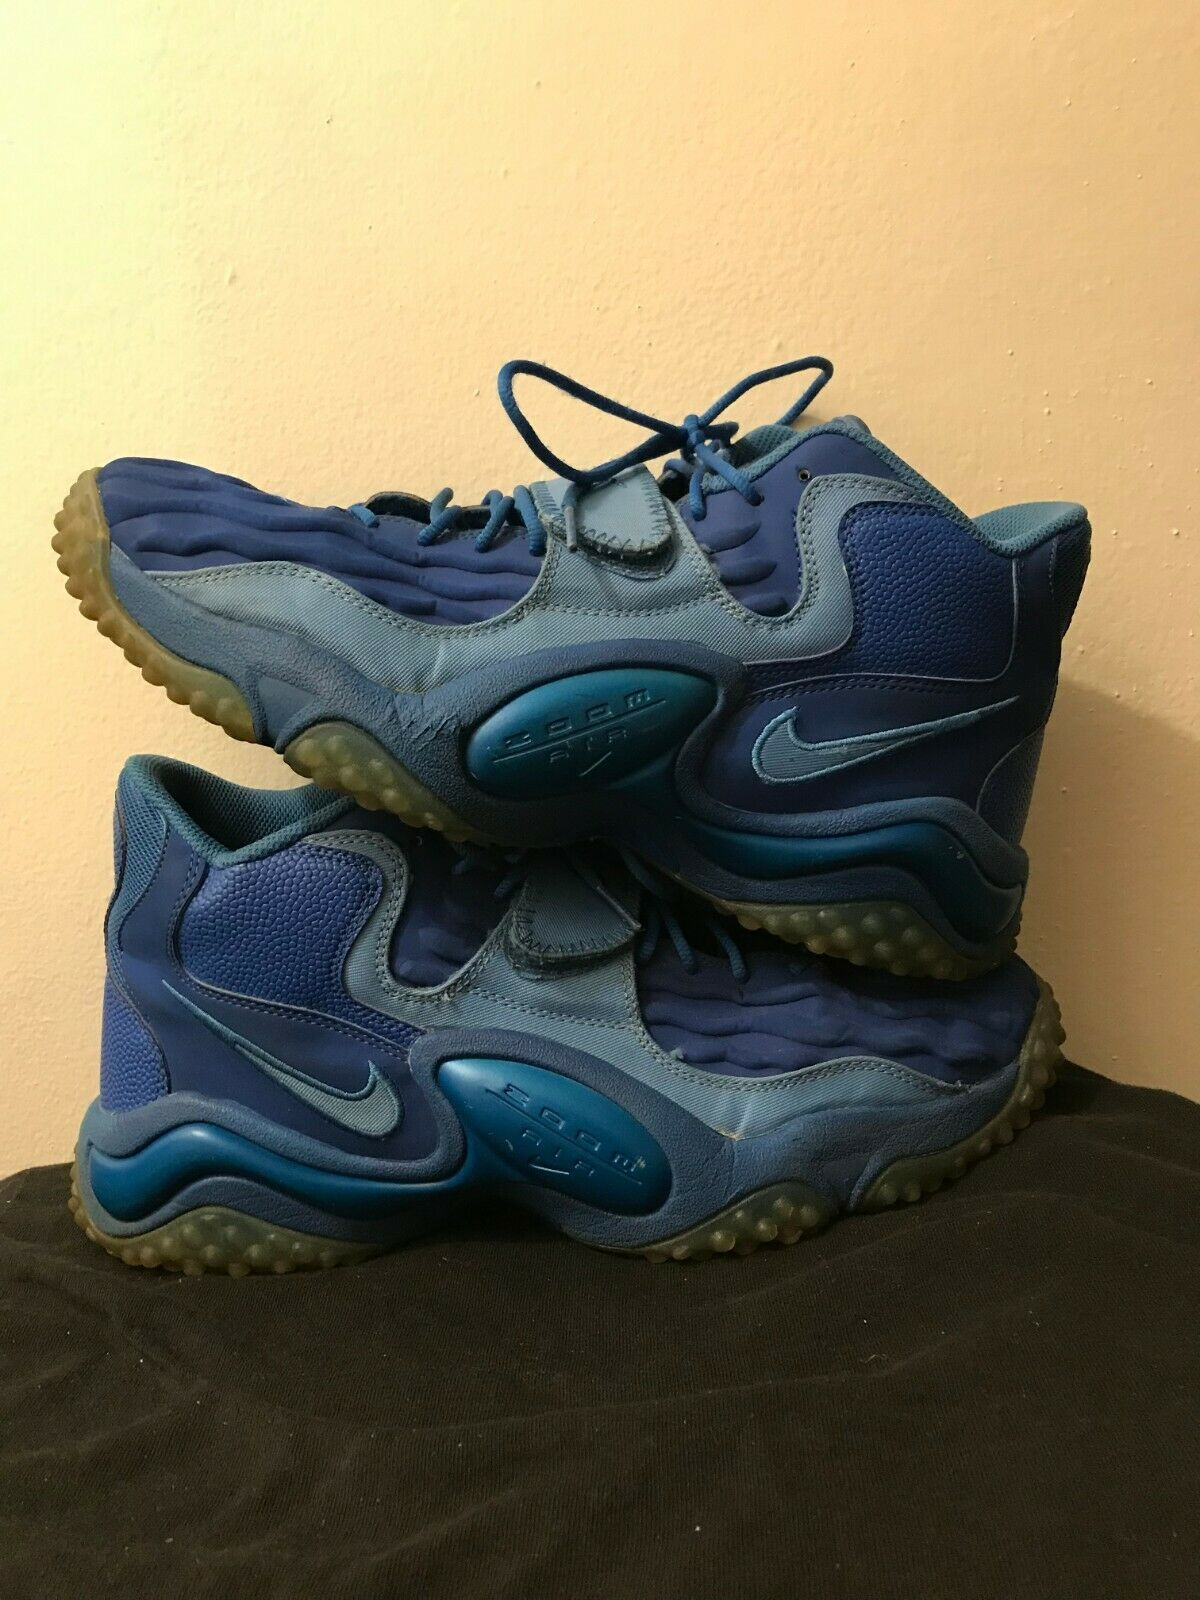 Nike Air Zoom Turf Jet 97 bluee October Size 13 Men's - Pre-Owned Great Condition